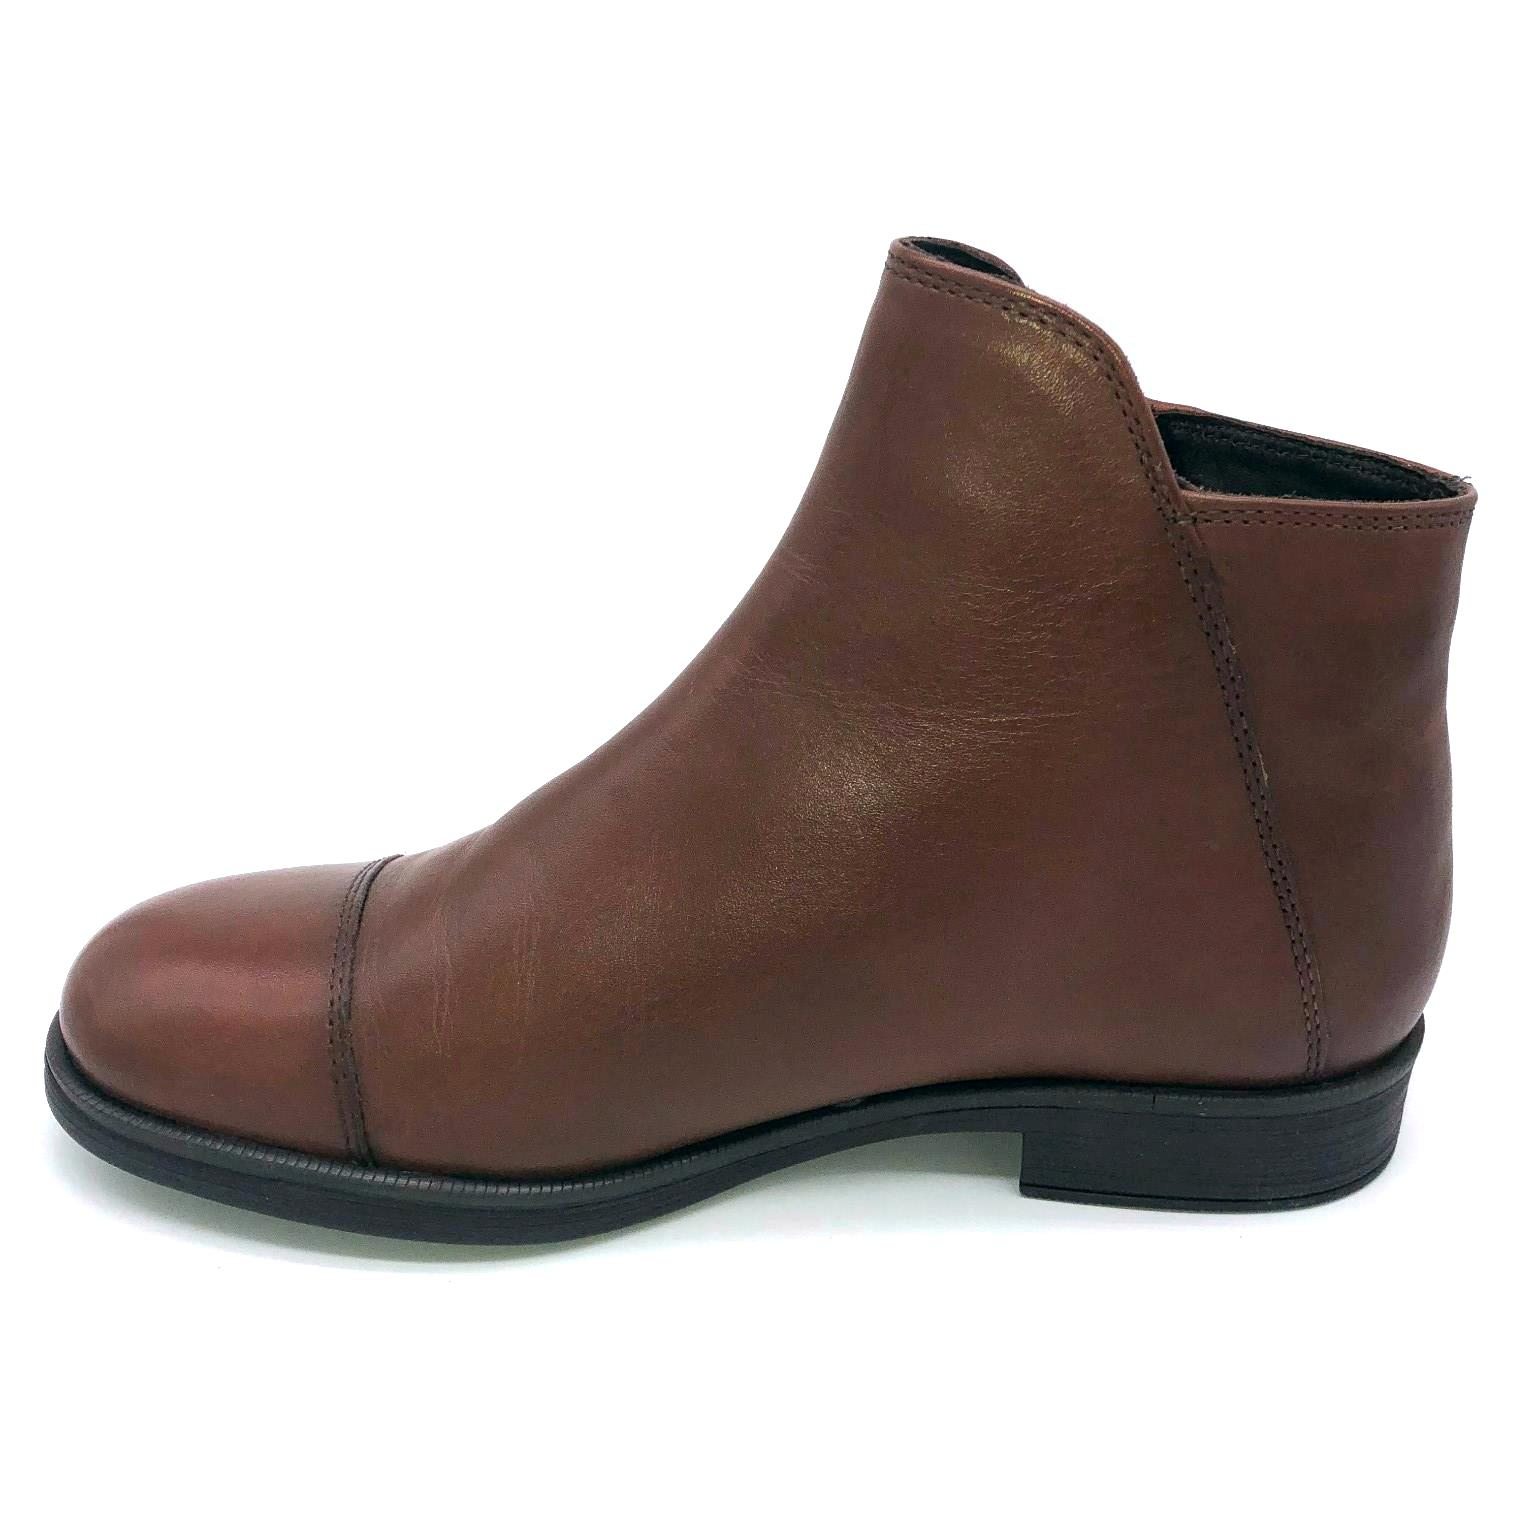 e1c20fdc5e2c6 Details about Geox Girls' Junior Agata C Ankle Boots Tobacco (Brown) 60%  OFF RRP